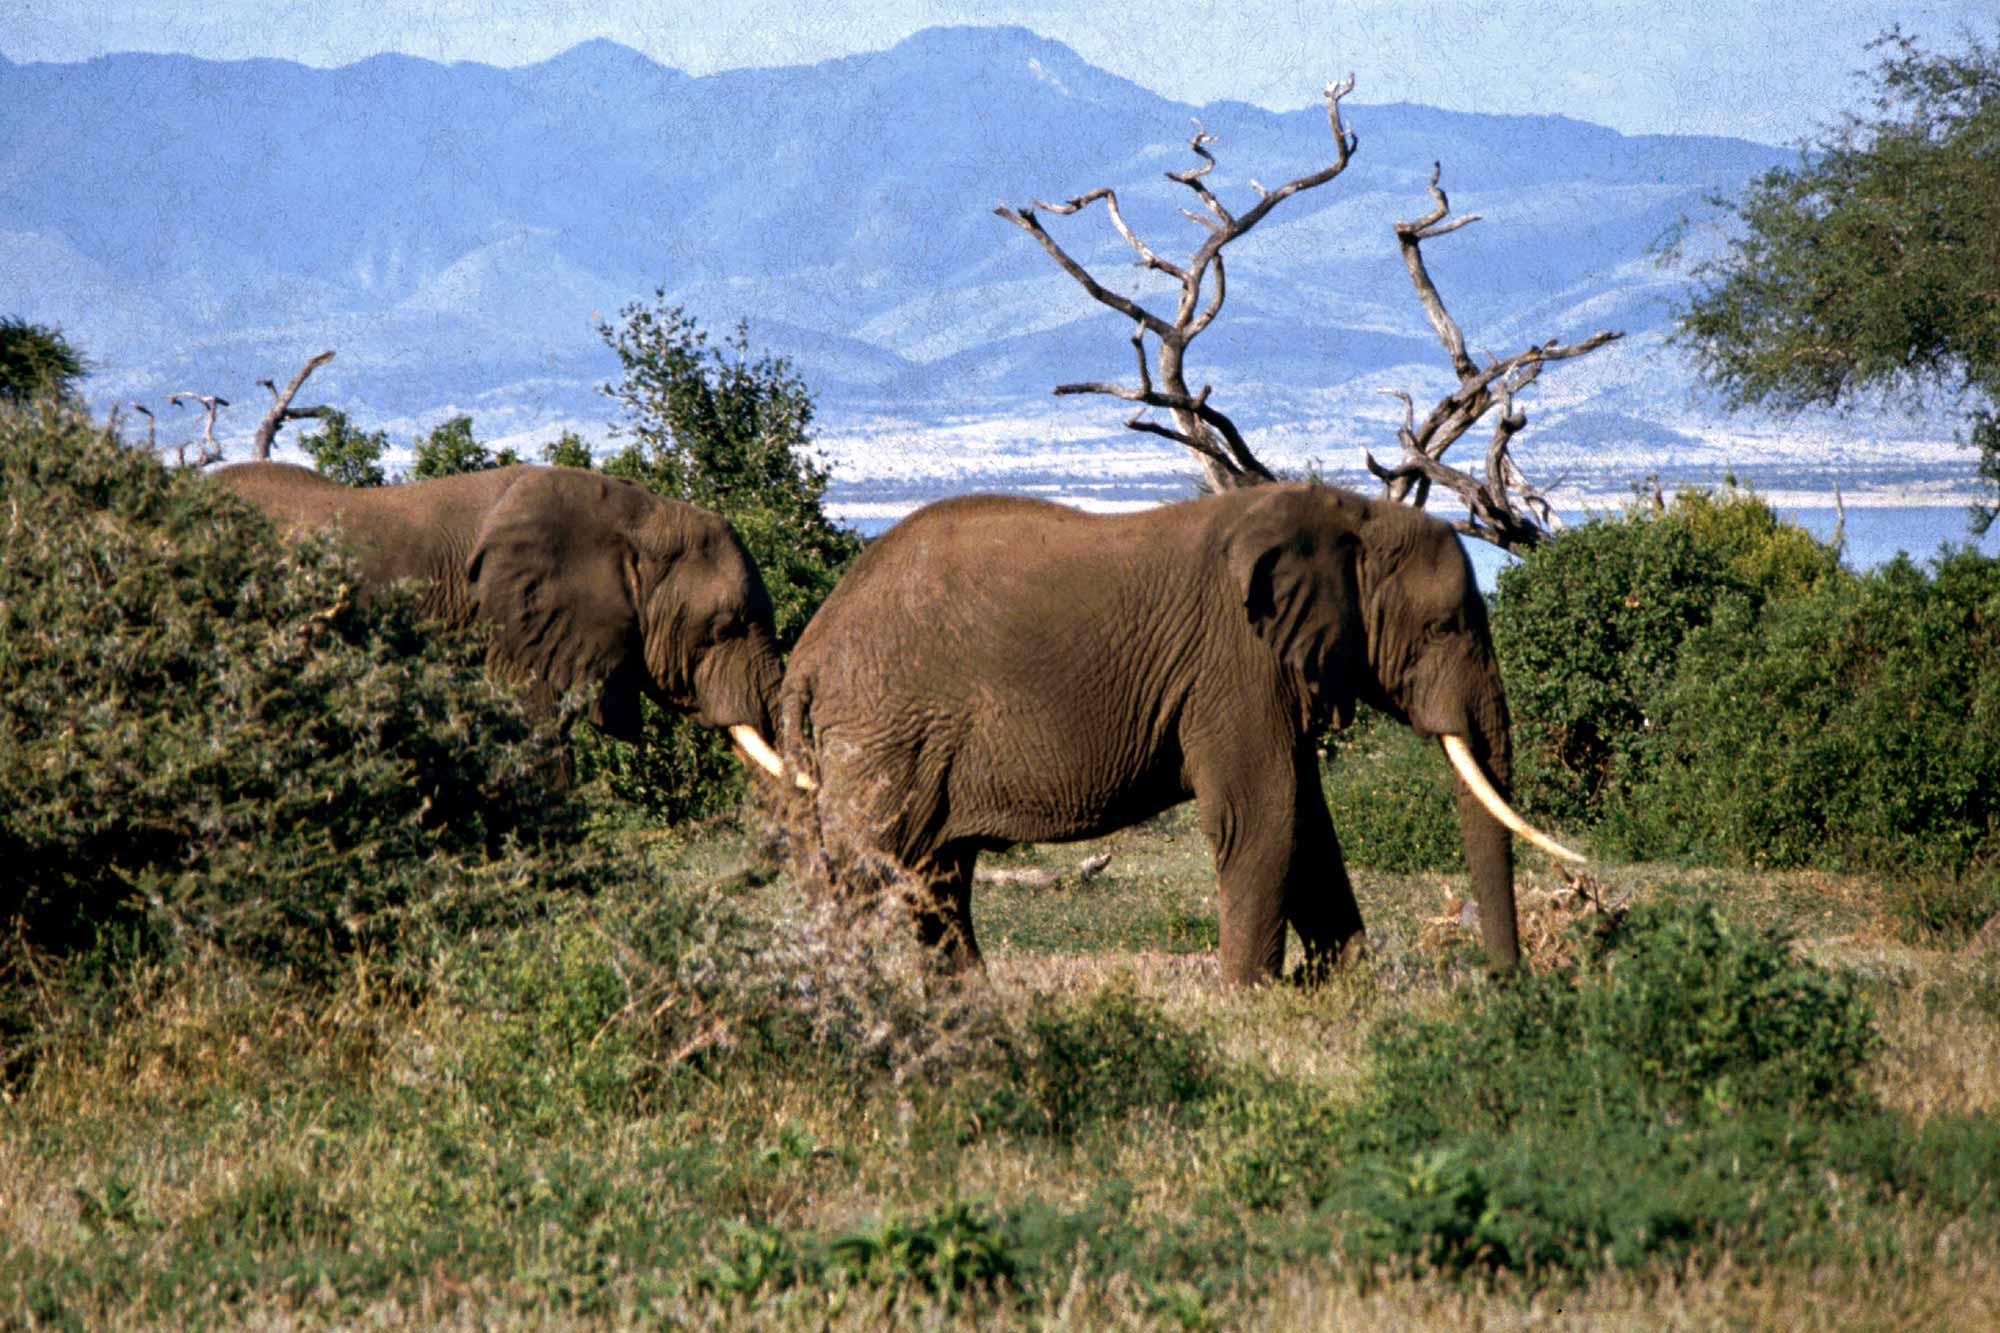 tanzania-lake-manyara-national-park-elephants-africa